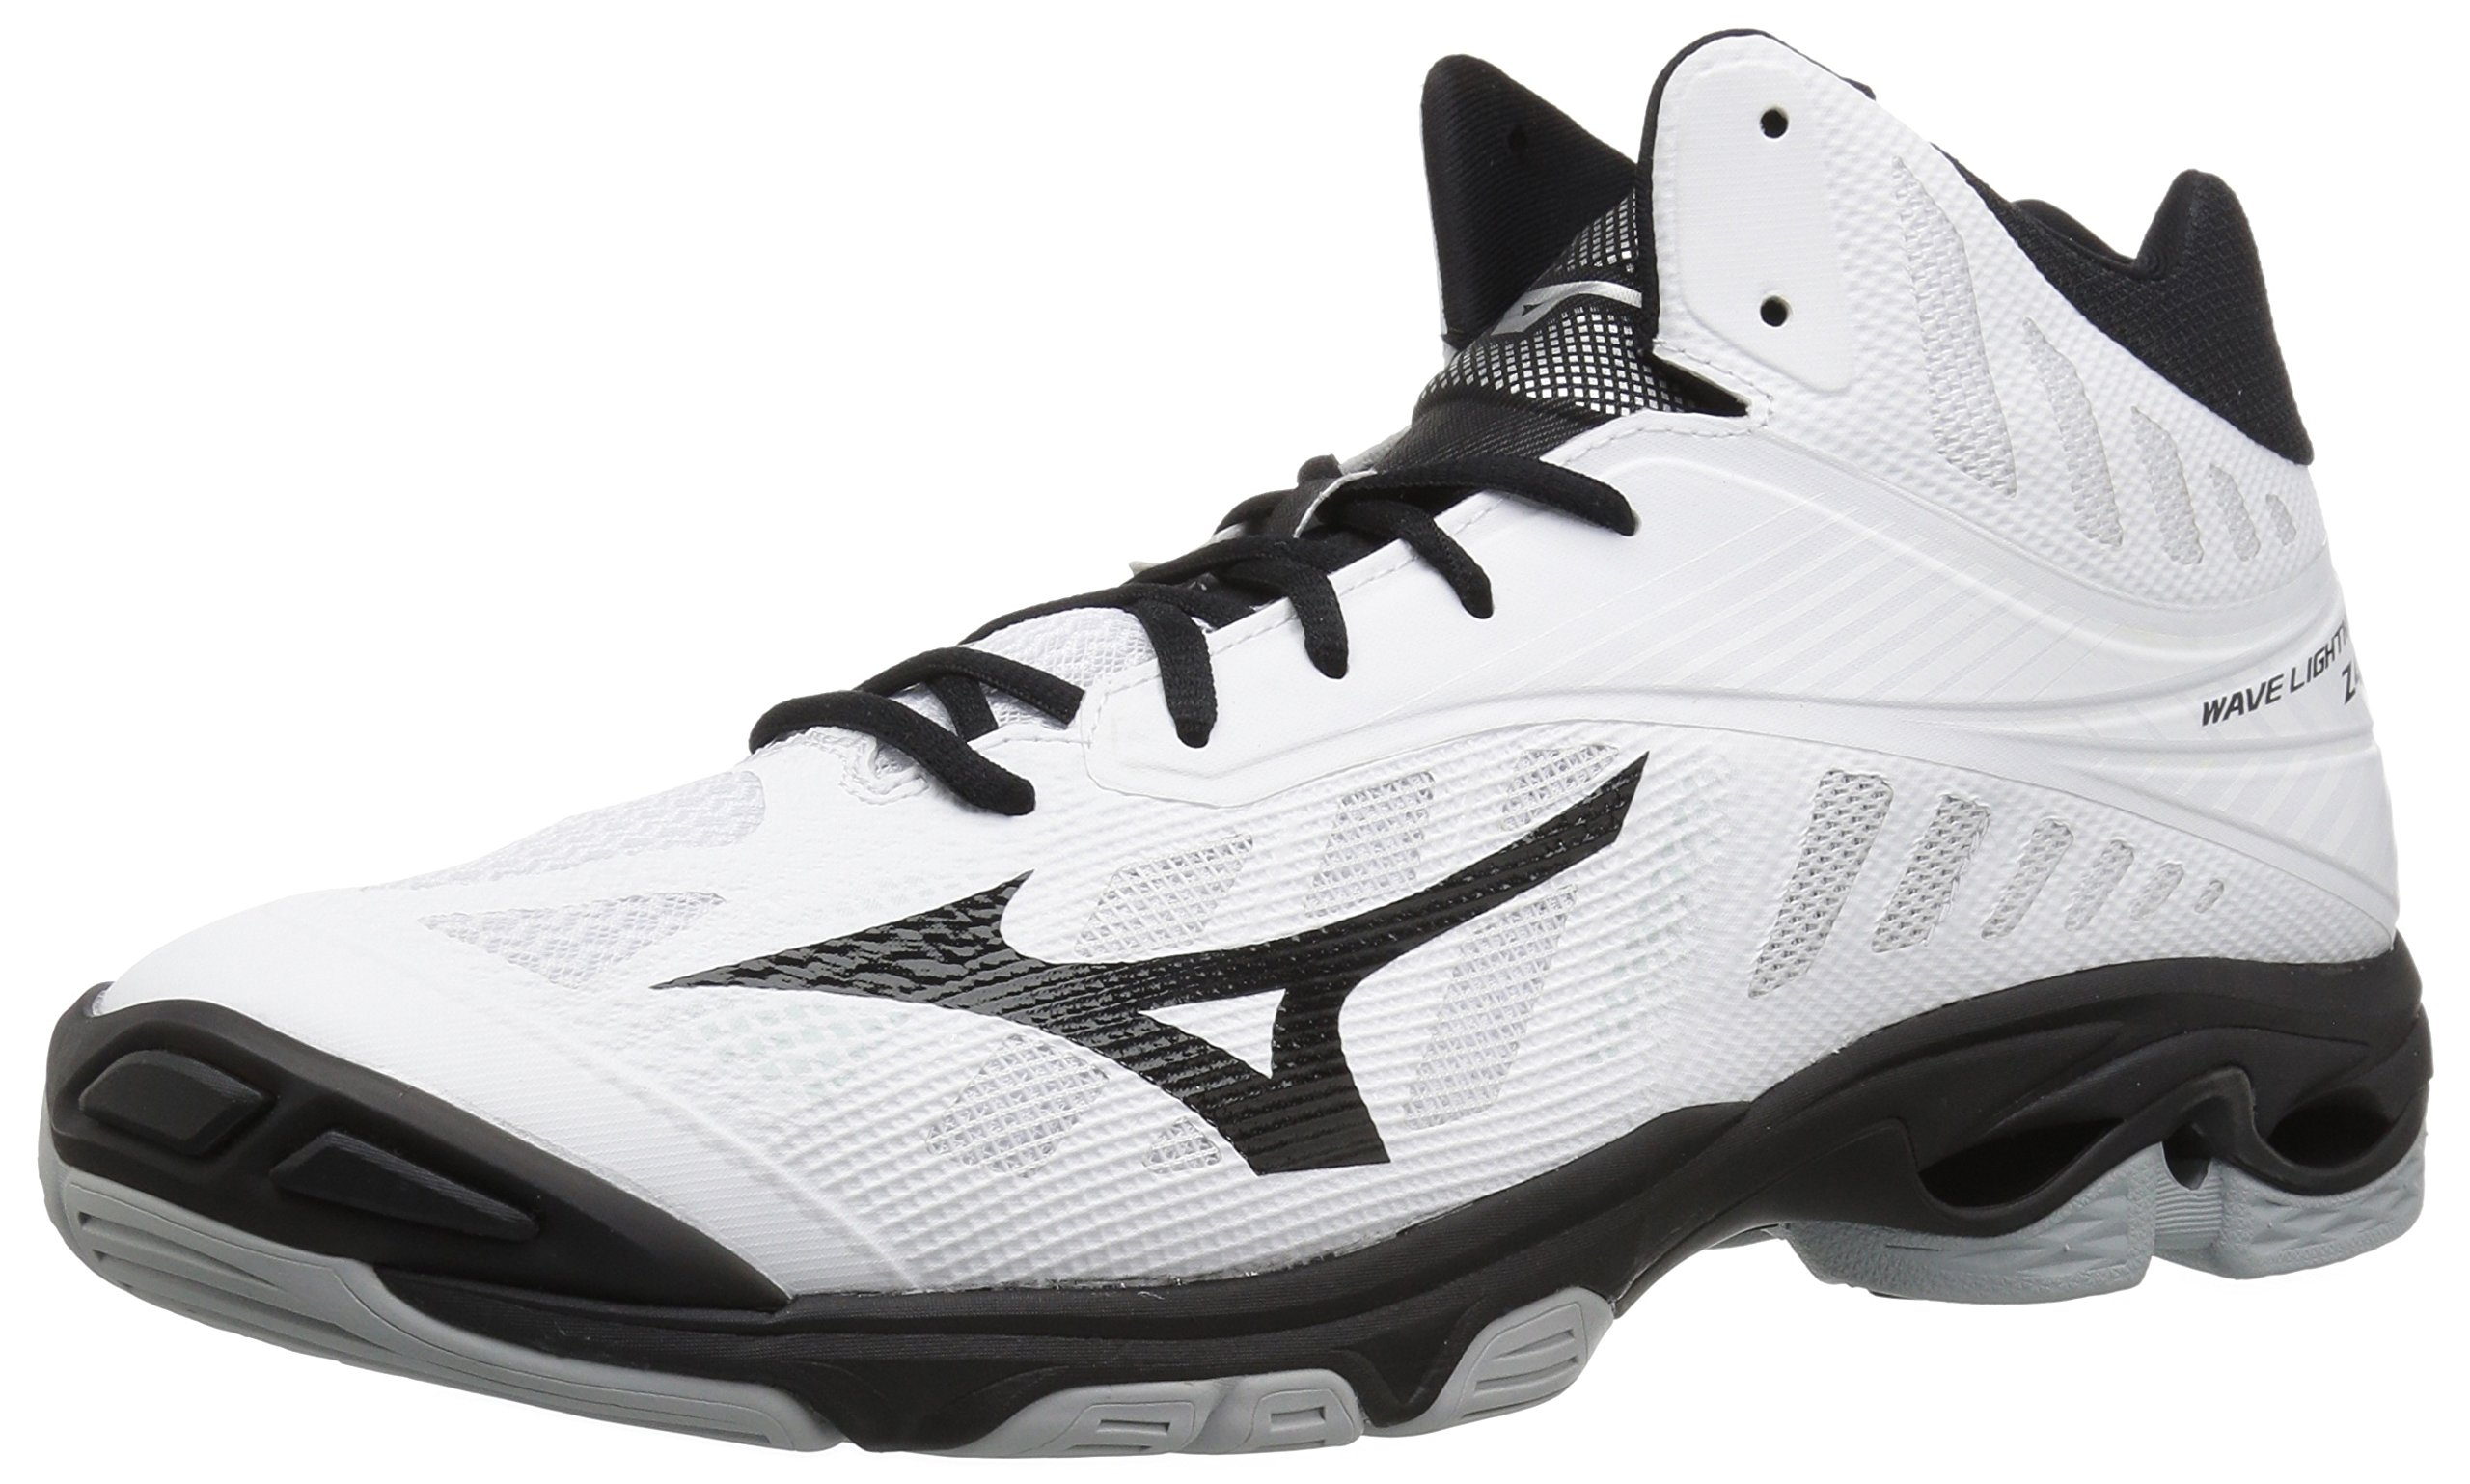 Mizuno Men's Wave Lightning Z4 Mid Volleyball Shoe, White/Black, Men's 15 D US by Mizuno